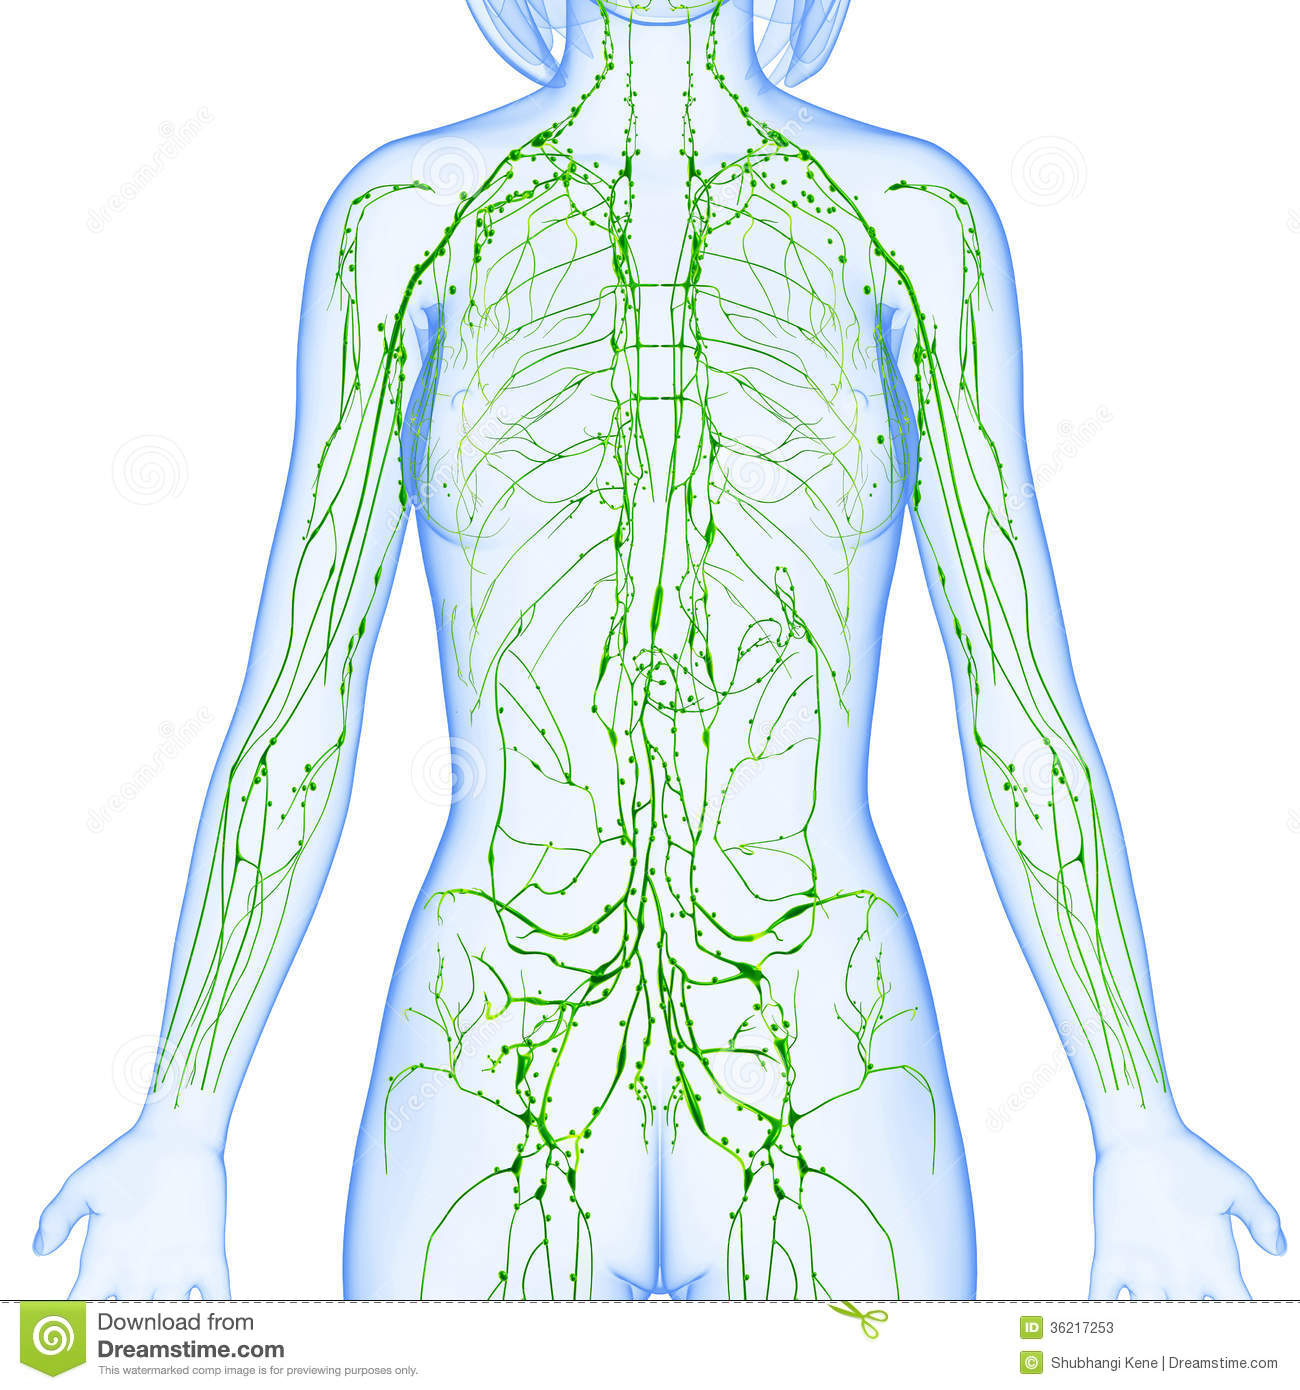 Female anatomy illustration of the Lymphatic system isolated & x ray.